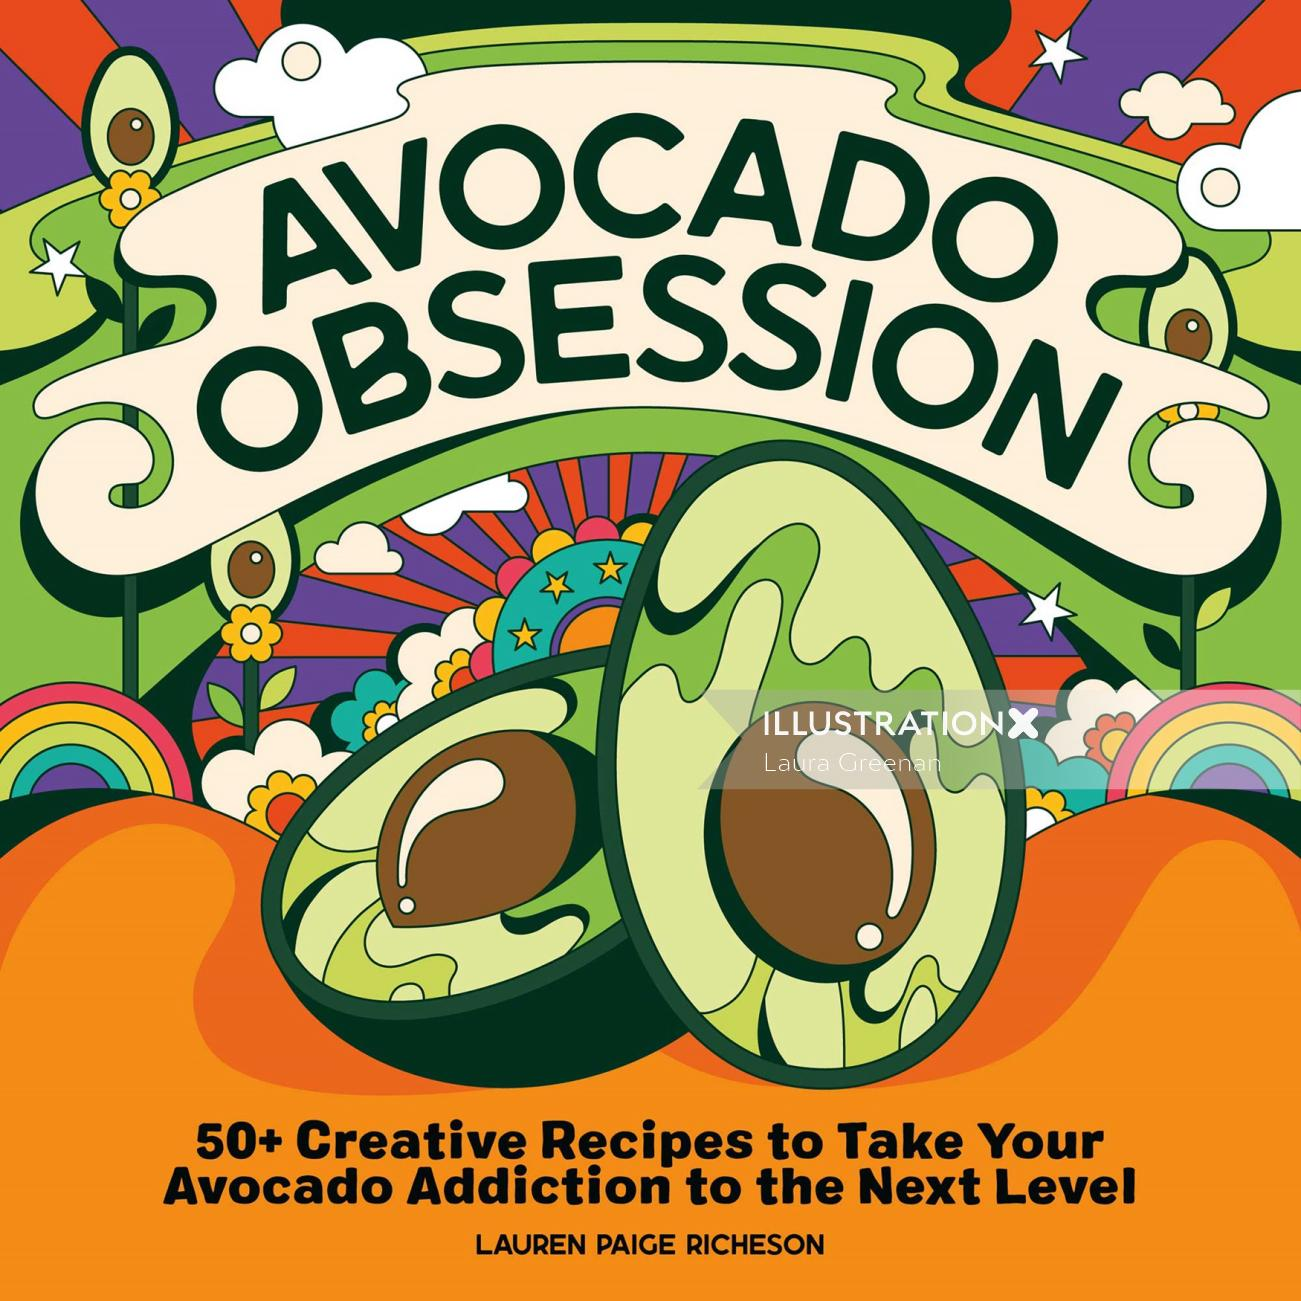 Fun, colourful, vibrant, retro, psychedelic, 60s, pop art style front cover for Avocado Obsession.